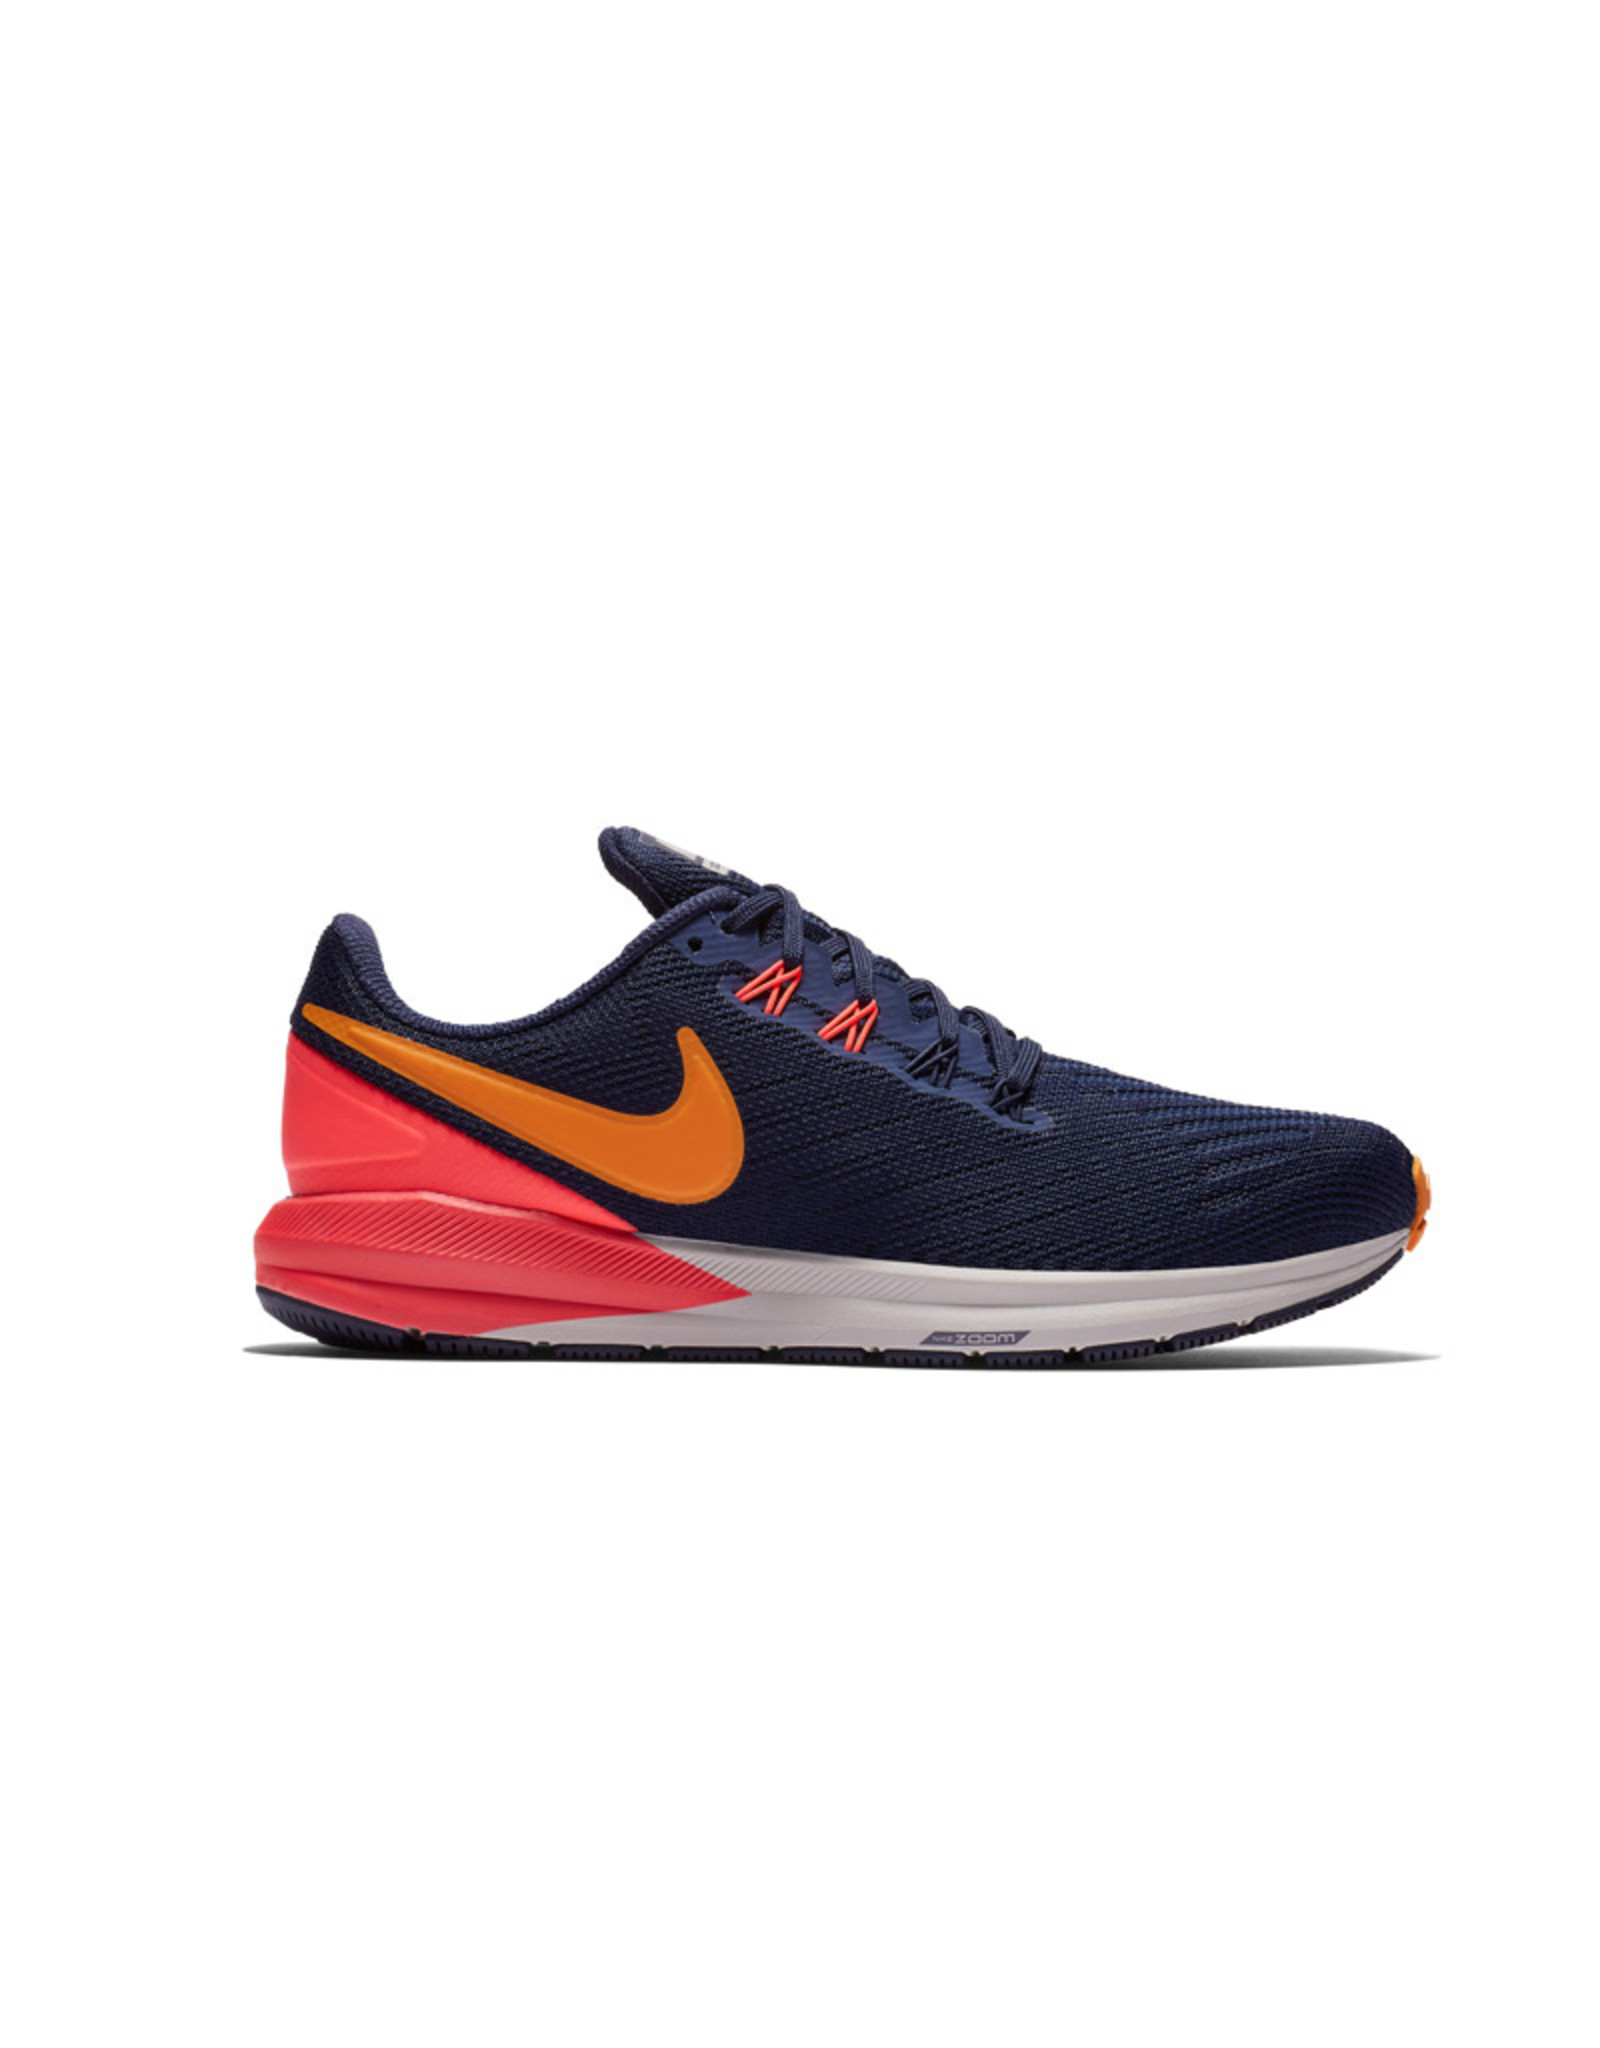 NIKE WMNS STRUCTURE 22